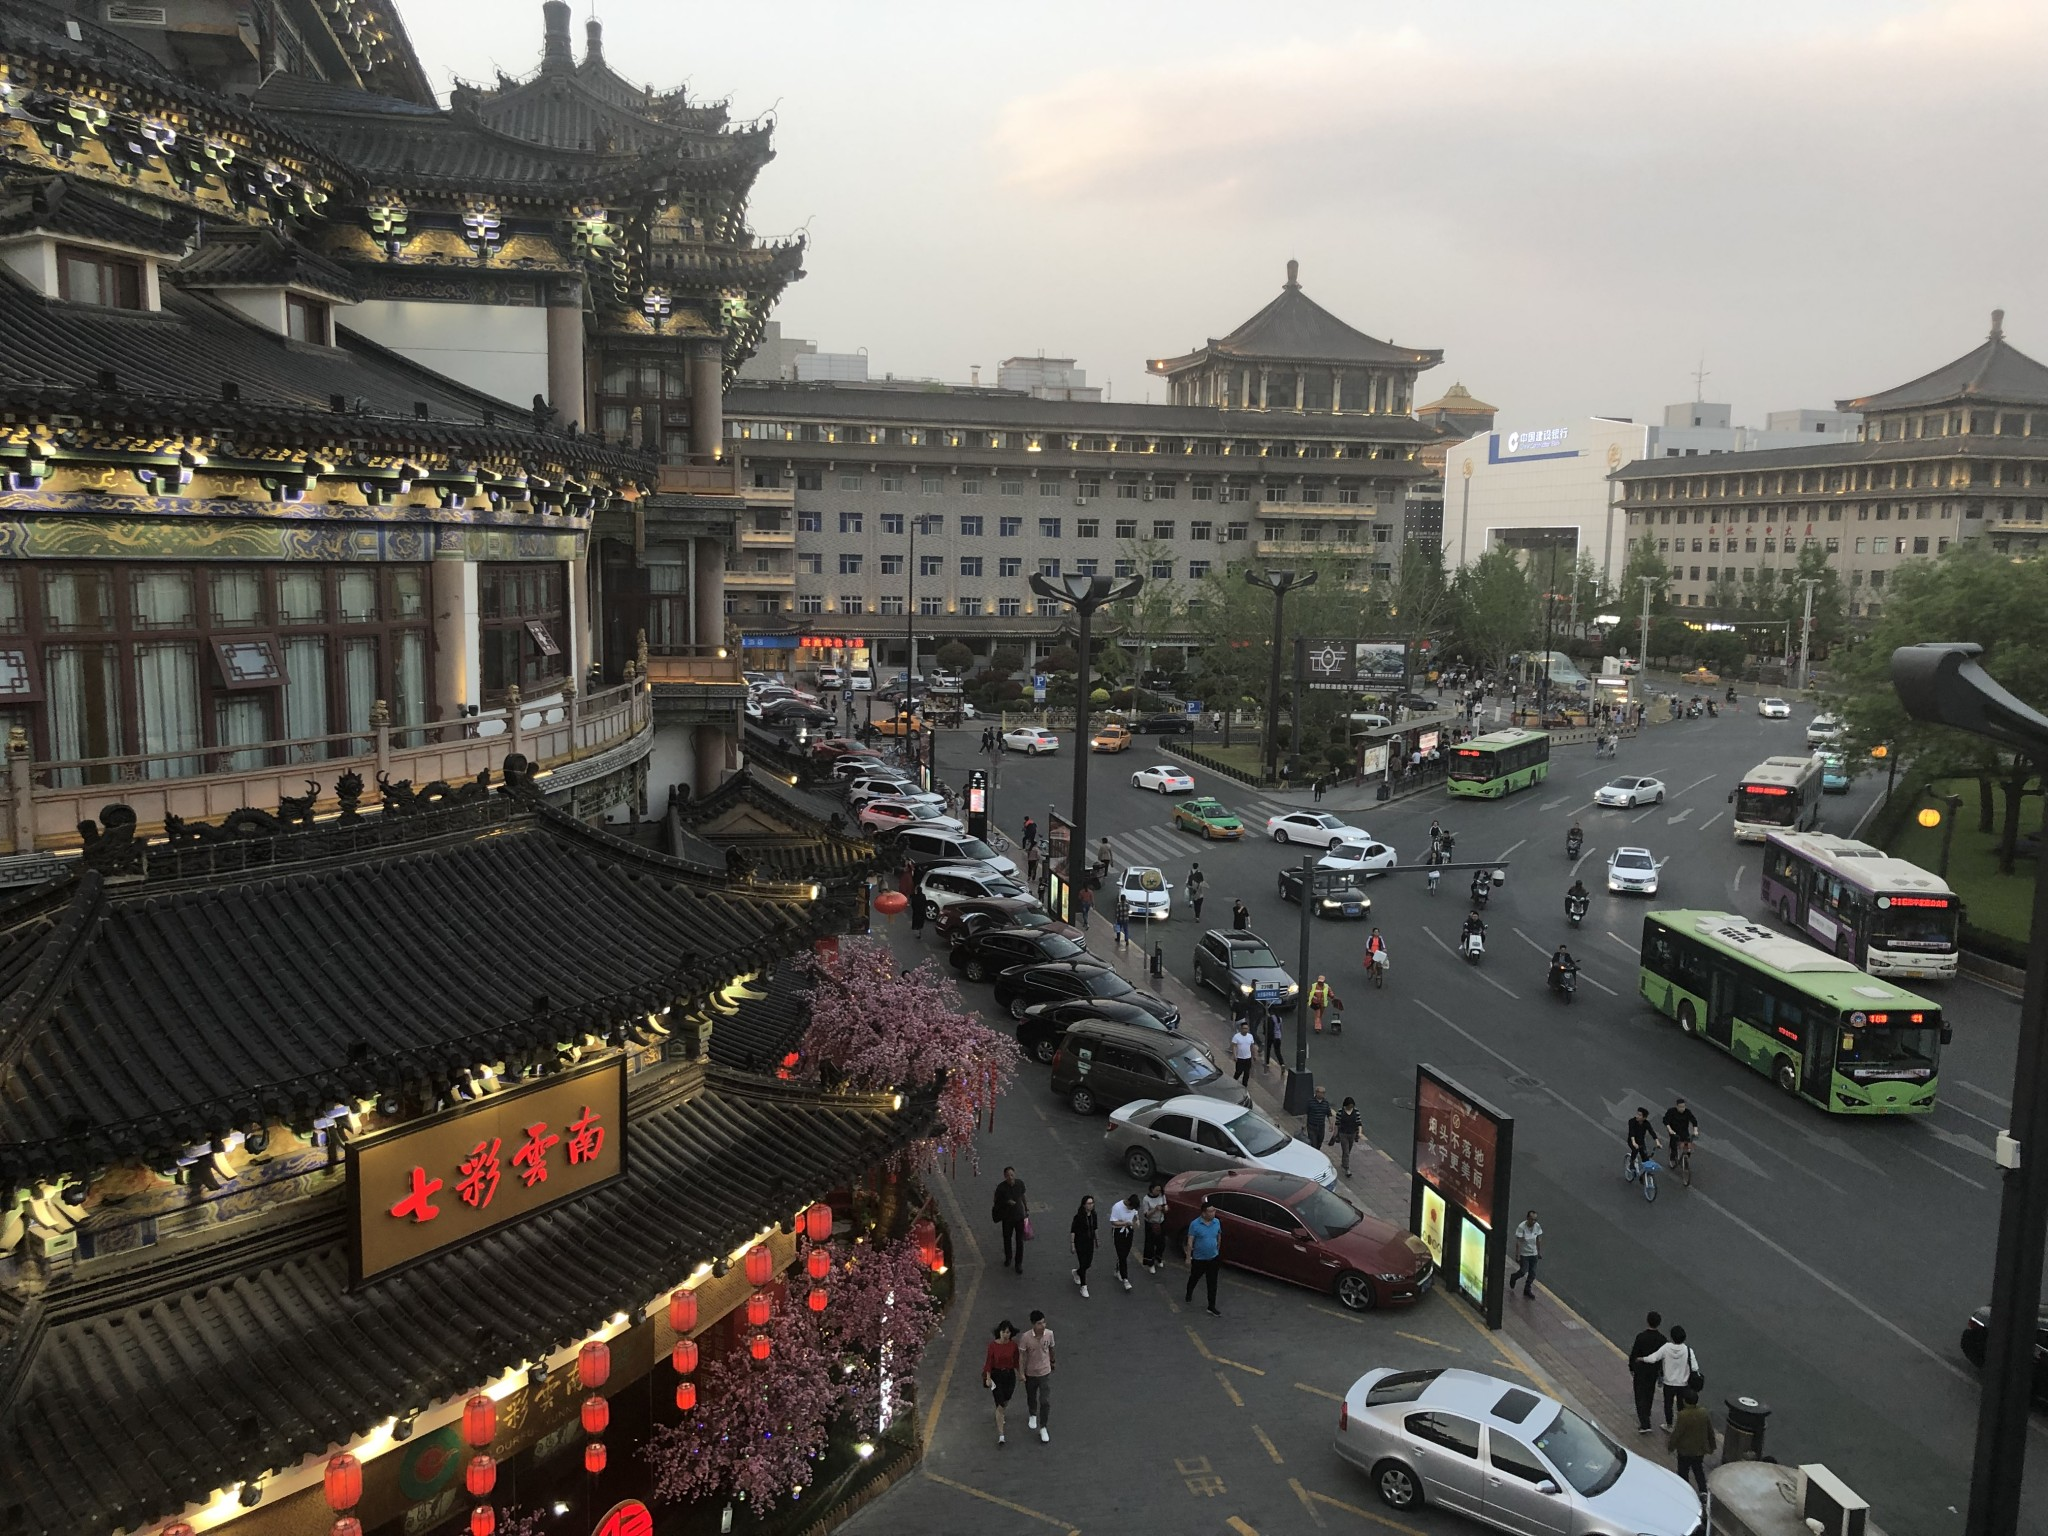 One day in Xian, China: Muslim Quarter, Terracotta Warriors, Xian City Wall